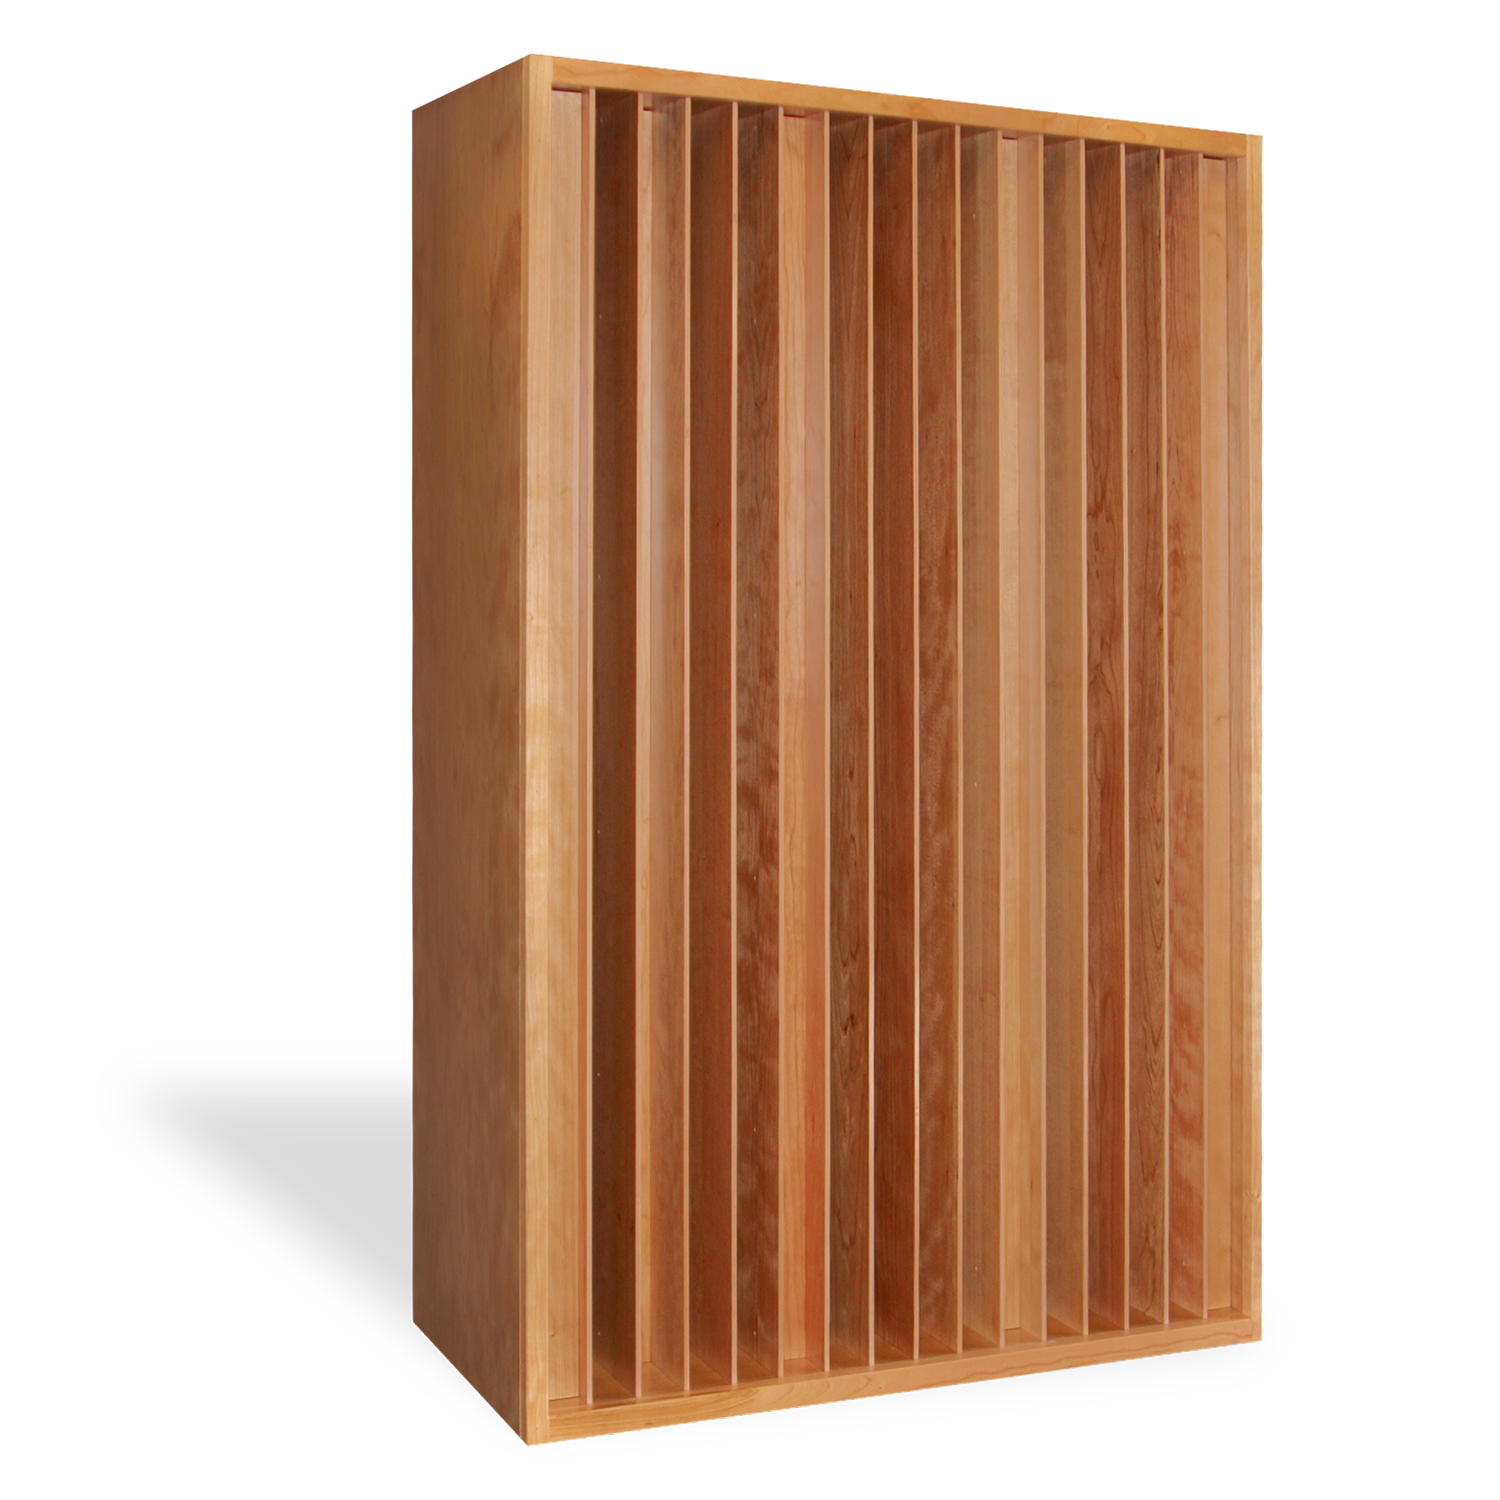 Product image of a QD-17 Quadratic Diffuser